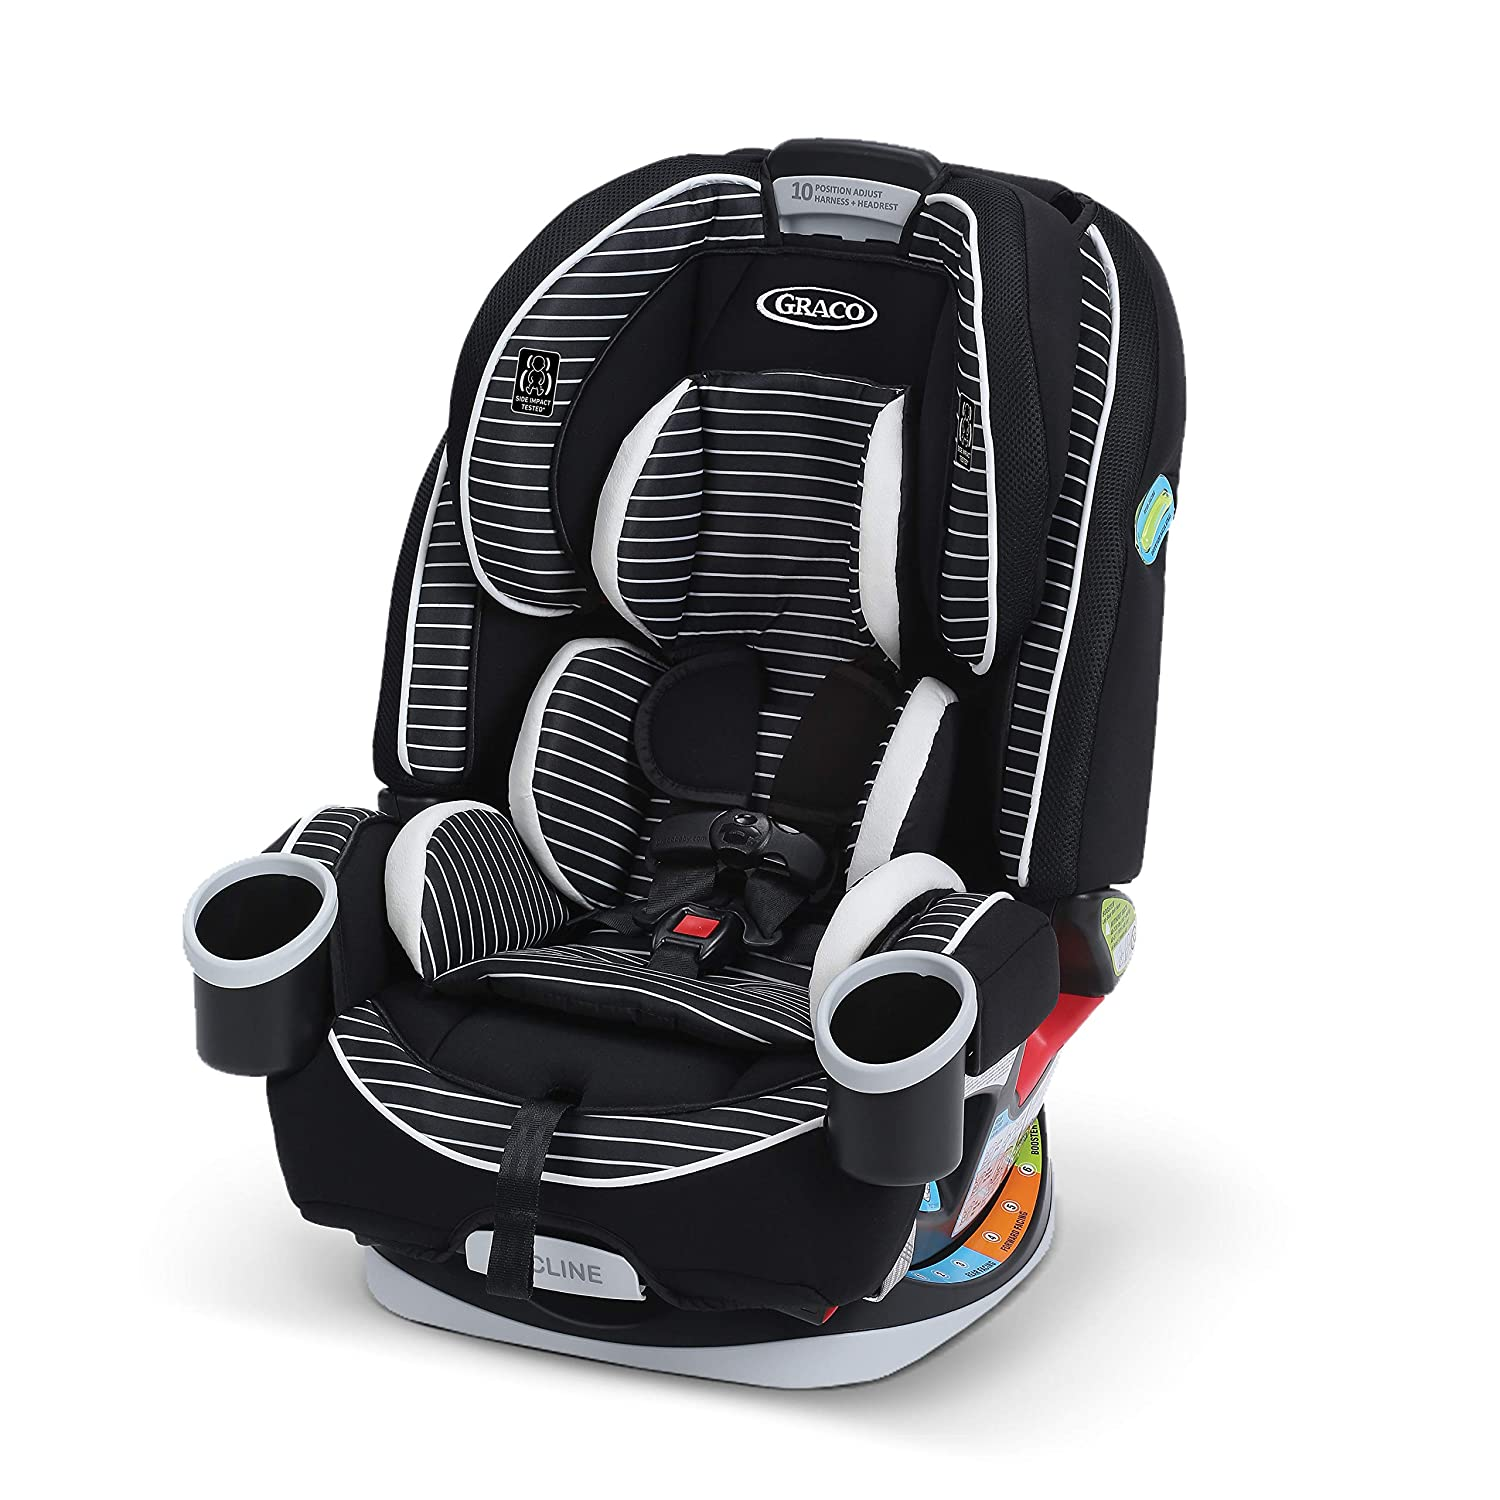 Best rated cheap convertible car seat 2020